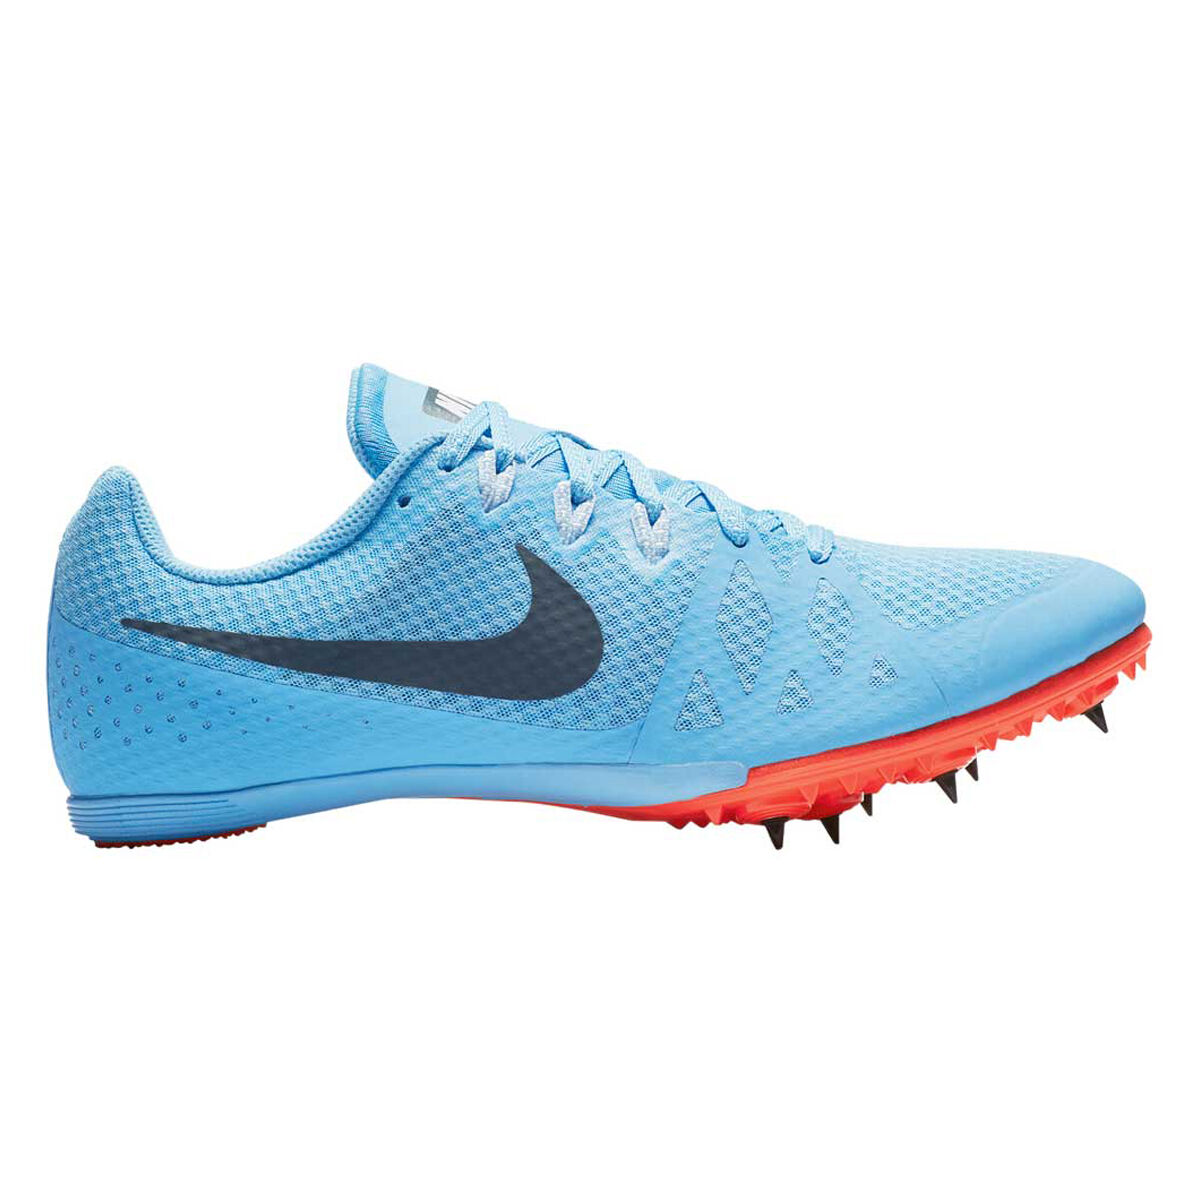 New Nike Zoom Rival M 8 Mens Multi-Use Track /& Field Spikes Mid Distance Shoes